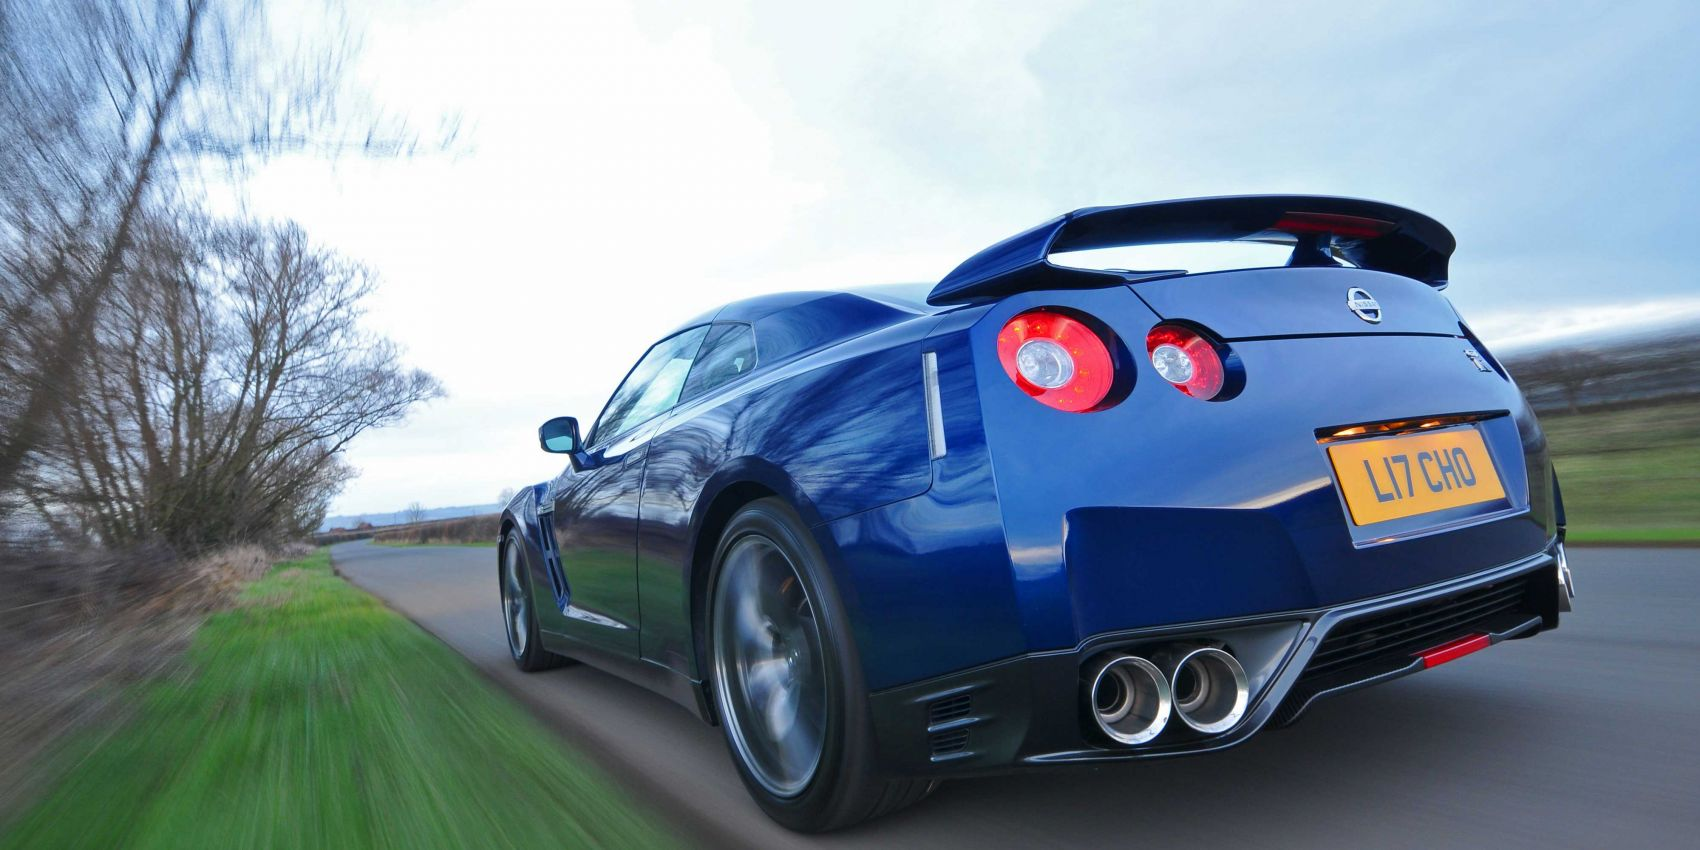 Litchfield Nissan GTR Warranty